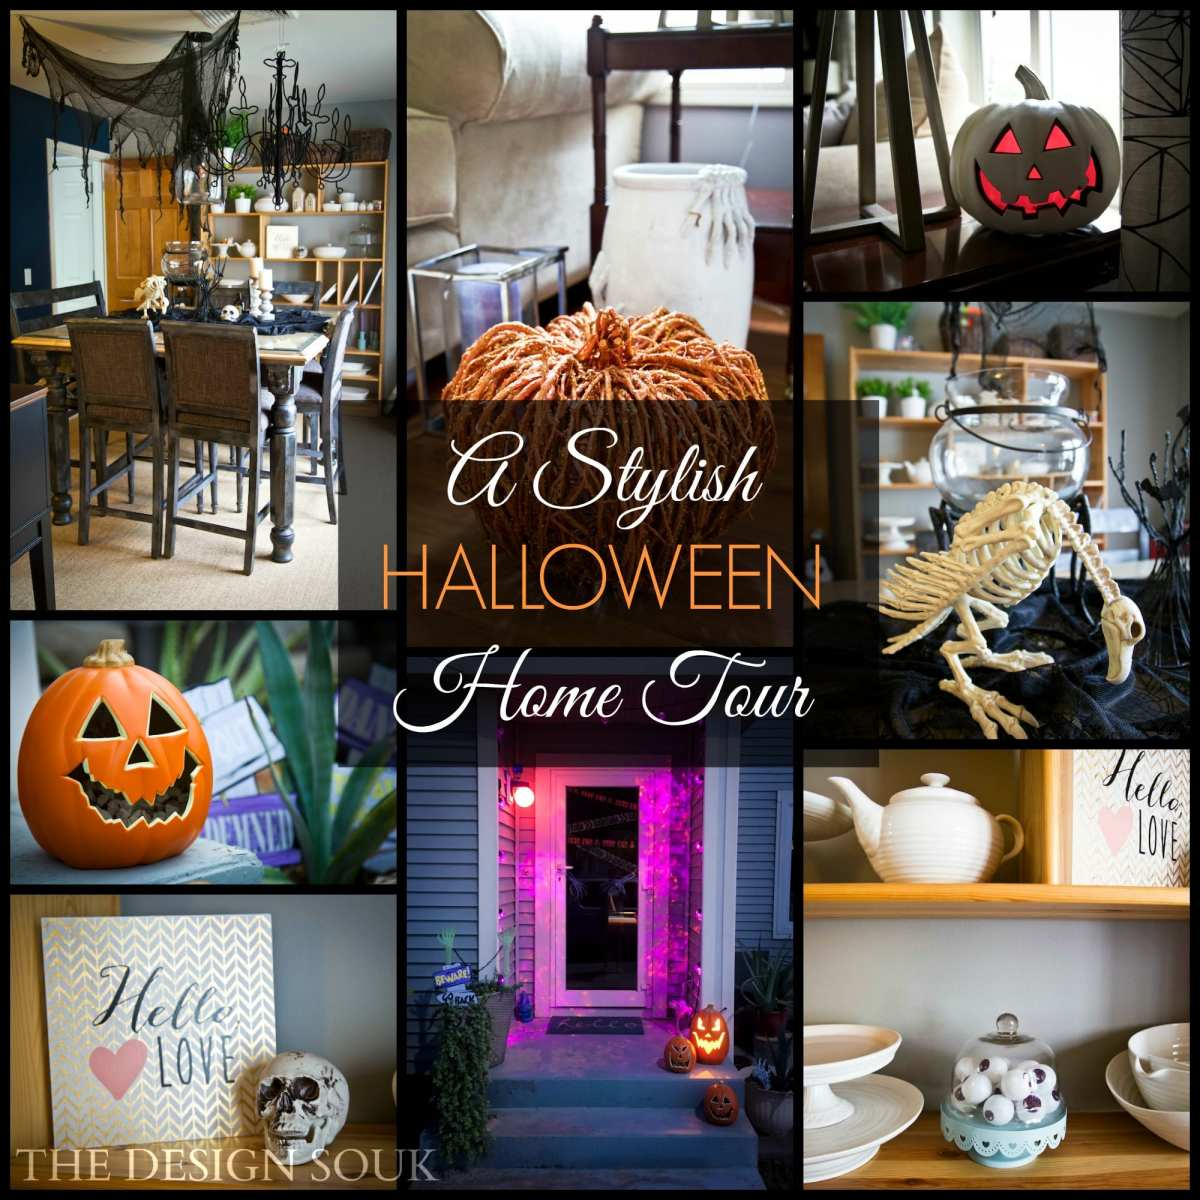 A Very Stylish Halloween Home Tour!